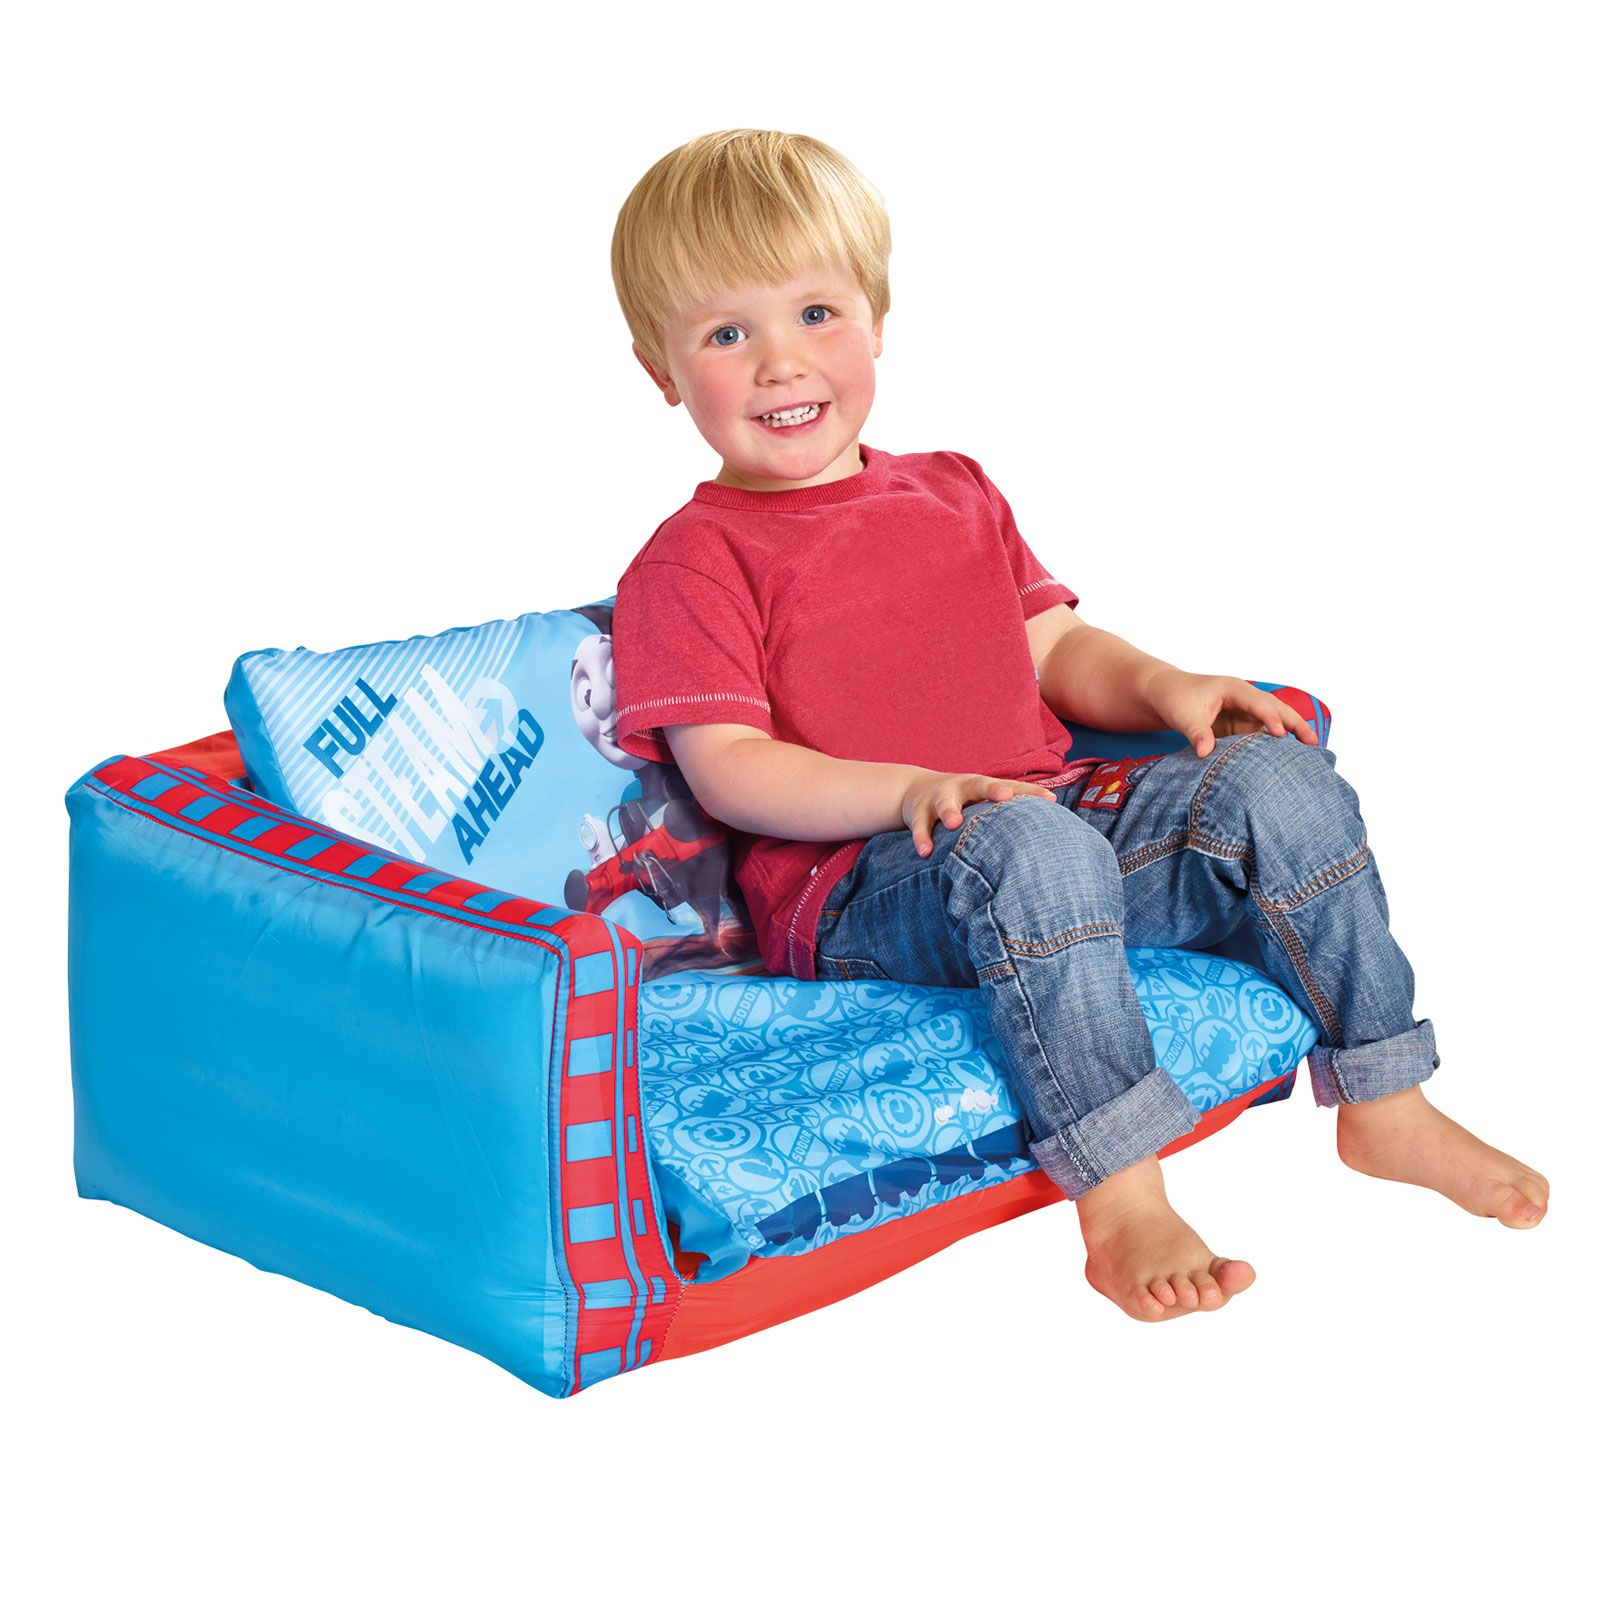 FLIP OUT SOFA RANGE INFLATABLE KIDS ROOM NEW MINIONS  : ed8de4e4 7423 414b 813c 1ad44738cd7e from www.ebay.es size 1600 x 1601 jpeg 230kB